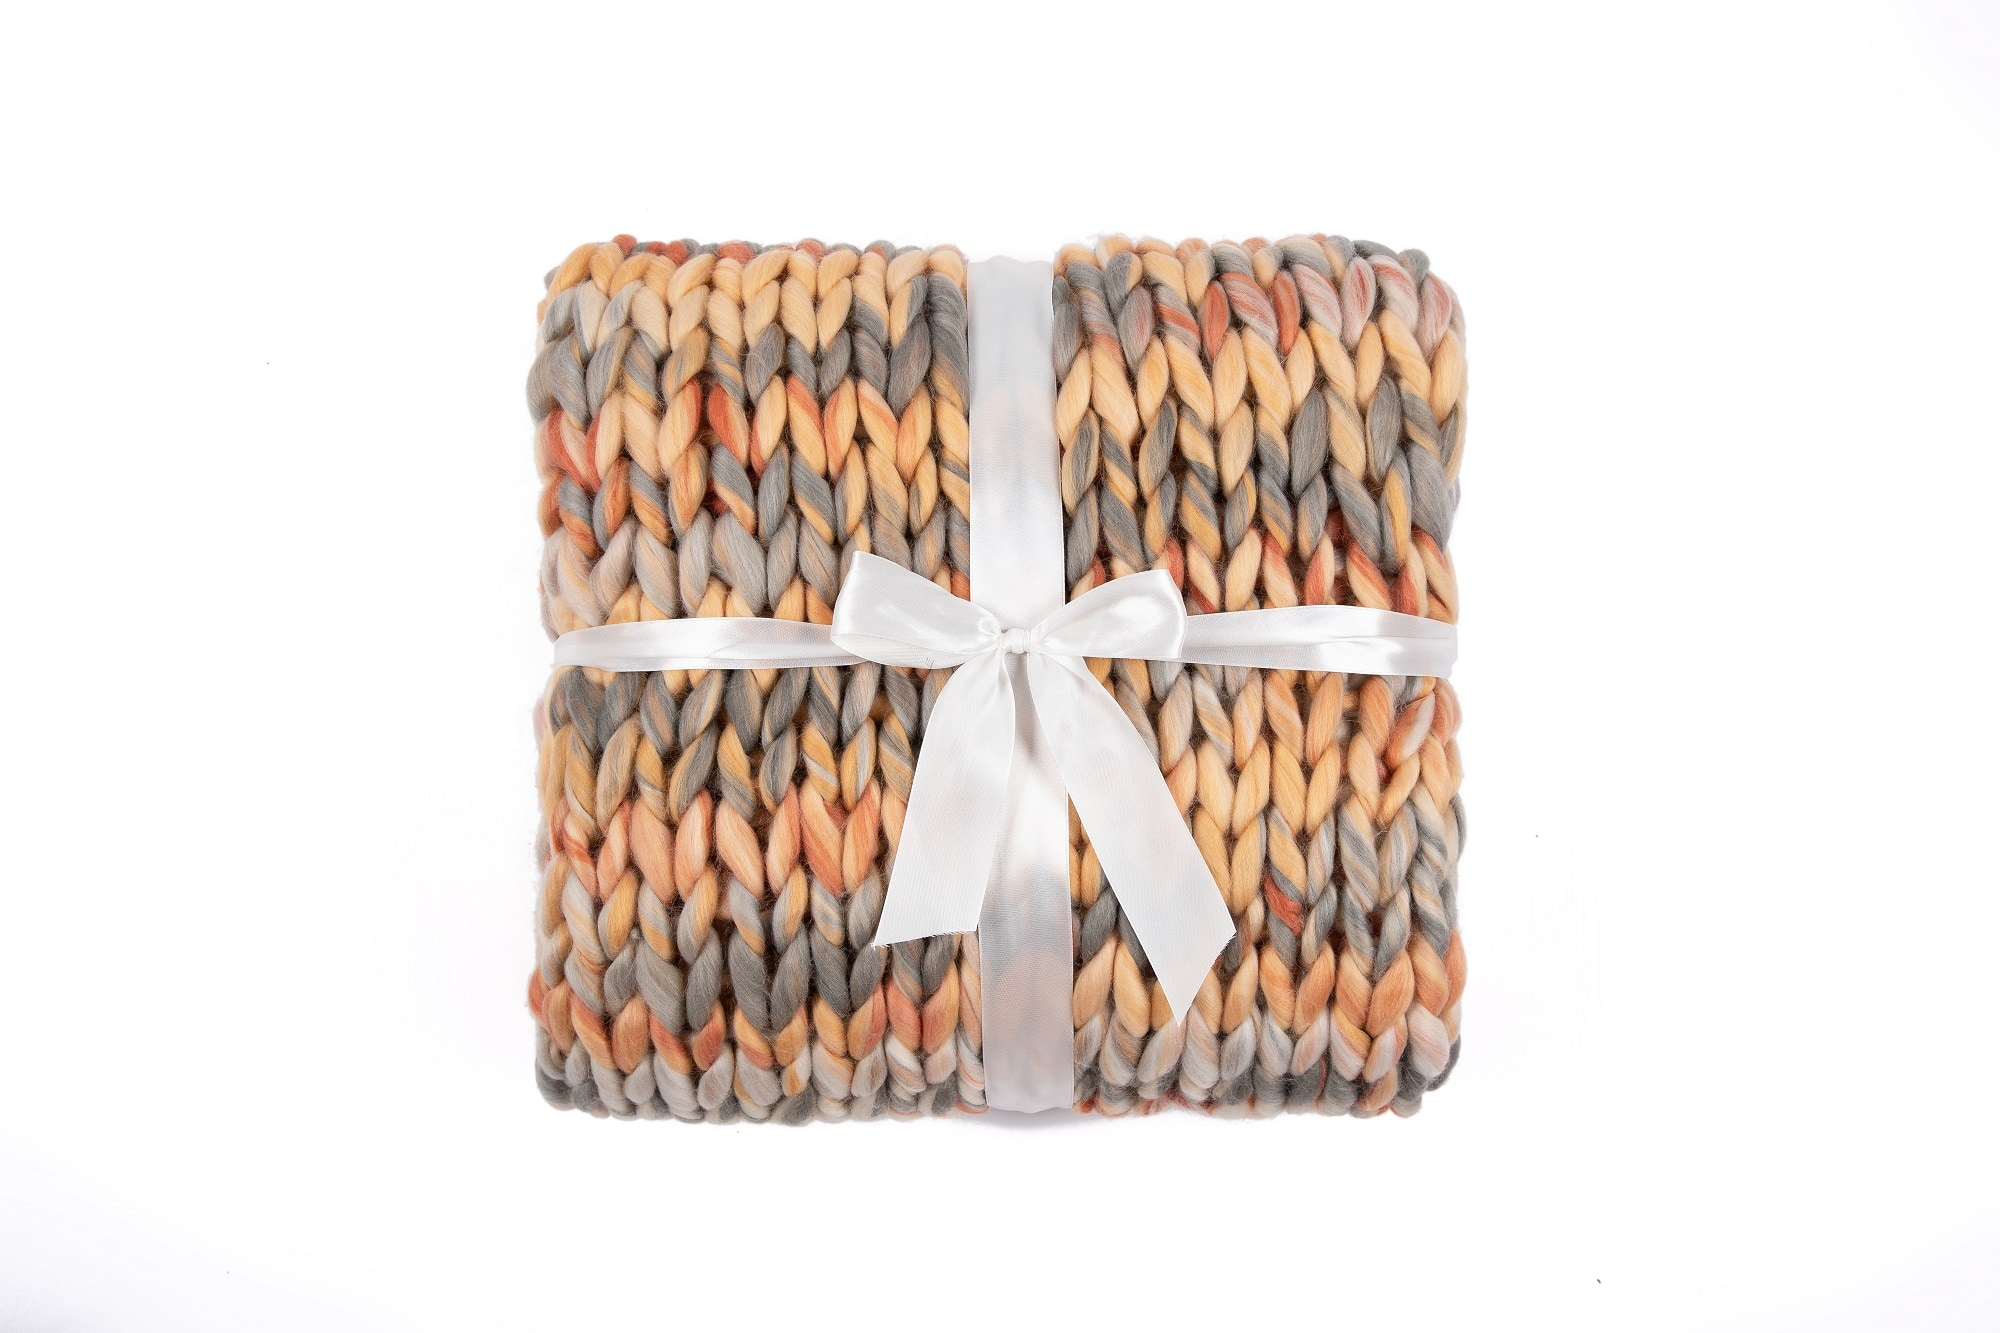 """50"""" x 60"""" Silver One Chunky Knitted Throw Blanket (Preppy Soft Hues) $8.80 + Free Shipping w/ Walmart+ or $35+"""